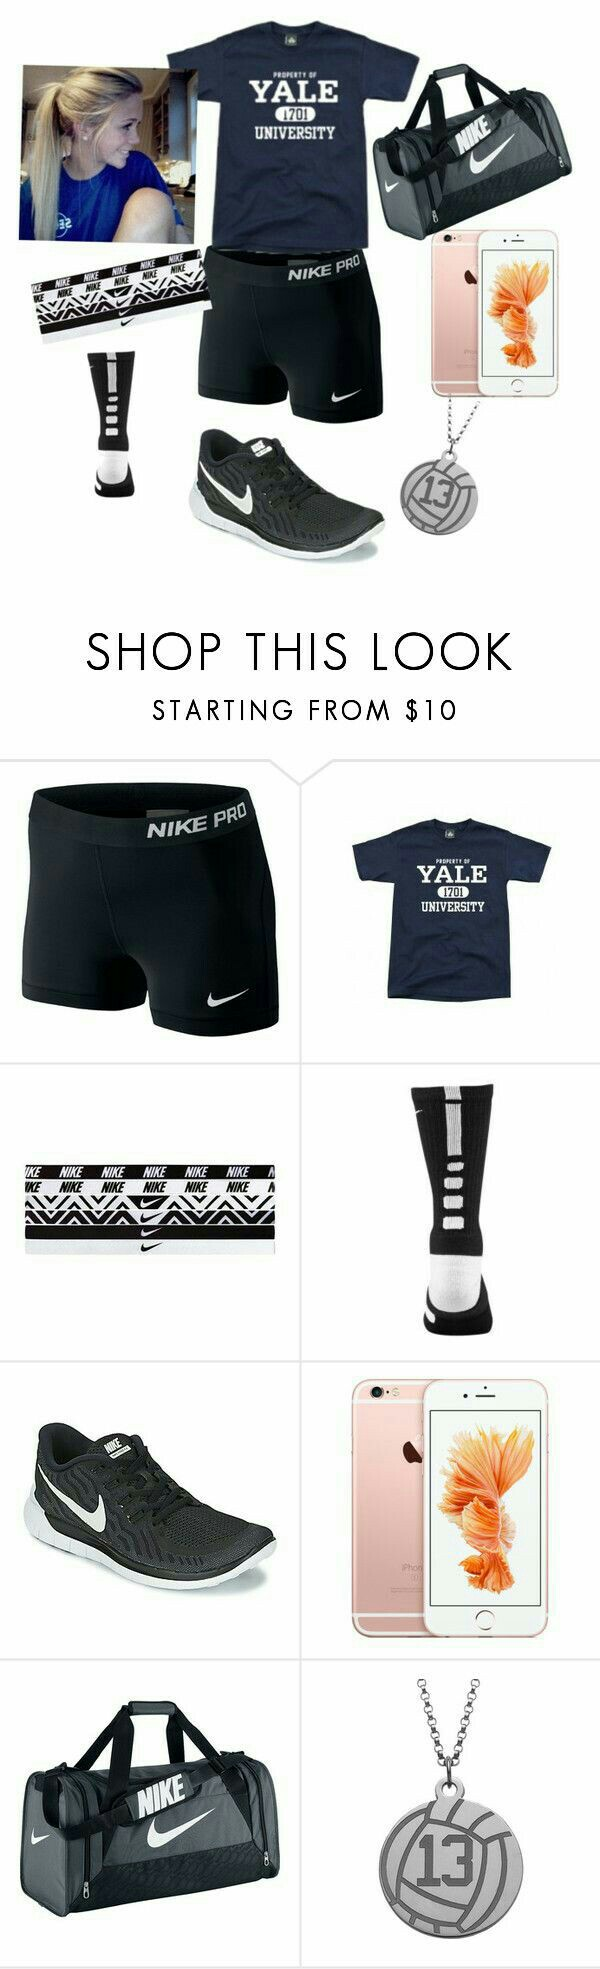 Ropa Moda Outfits Style Nike Volleyball Outfits Sport Outfits Practice Outfits